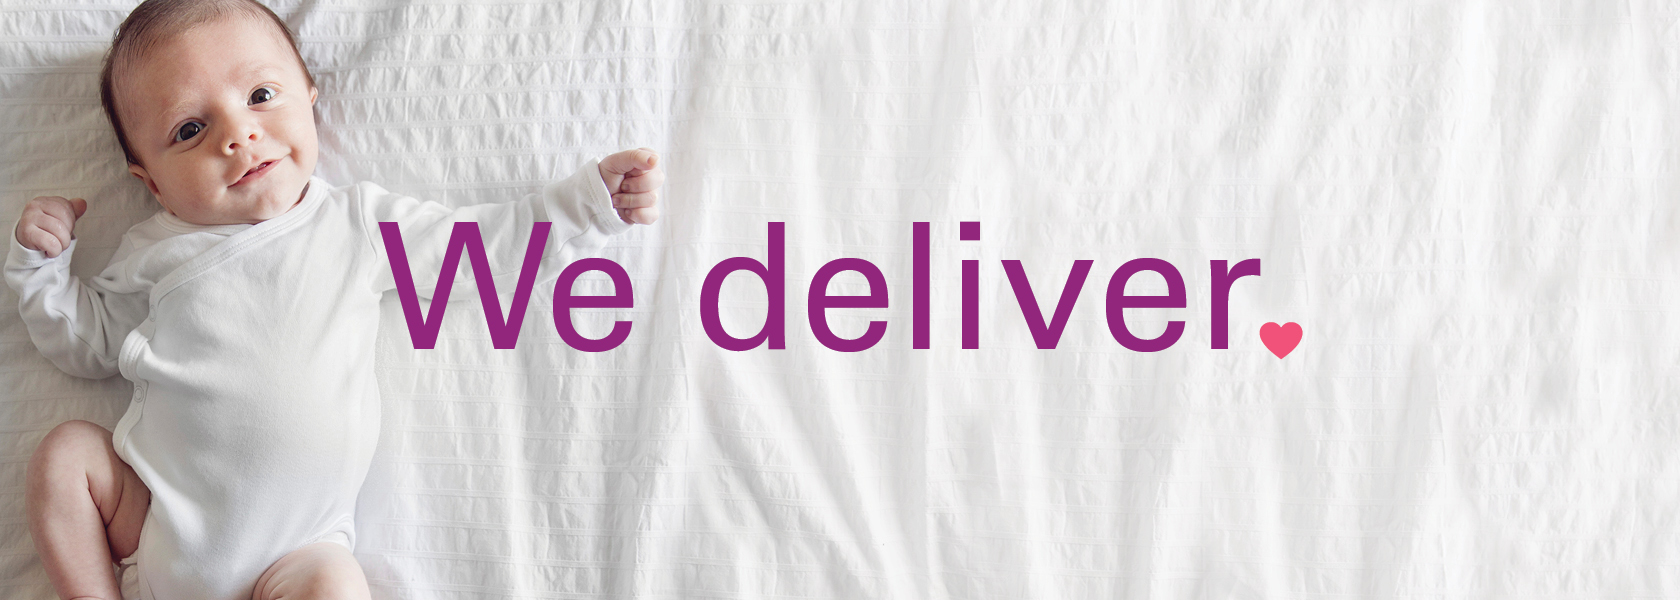 We deliver. Smiling baby looking at camera.